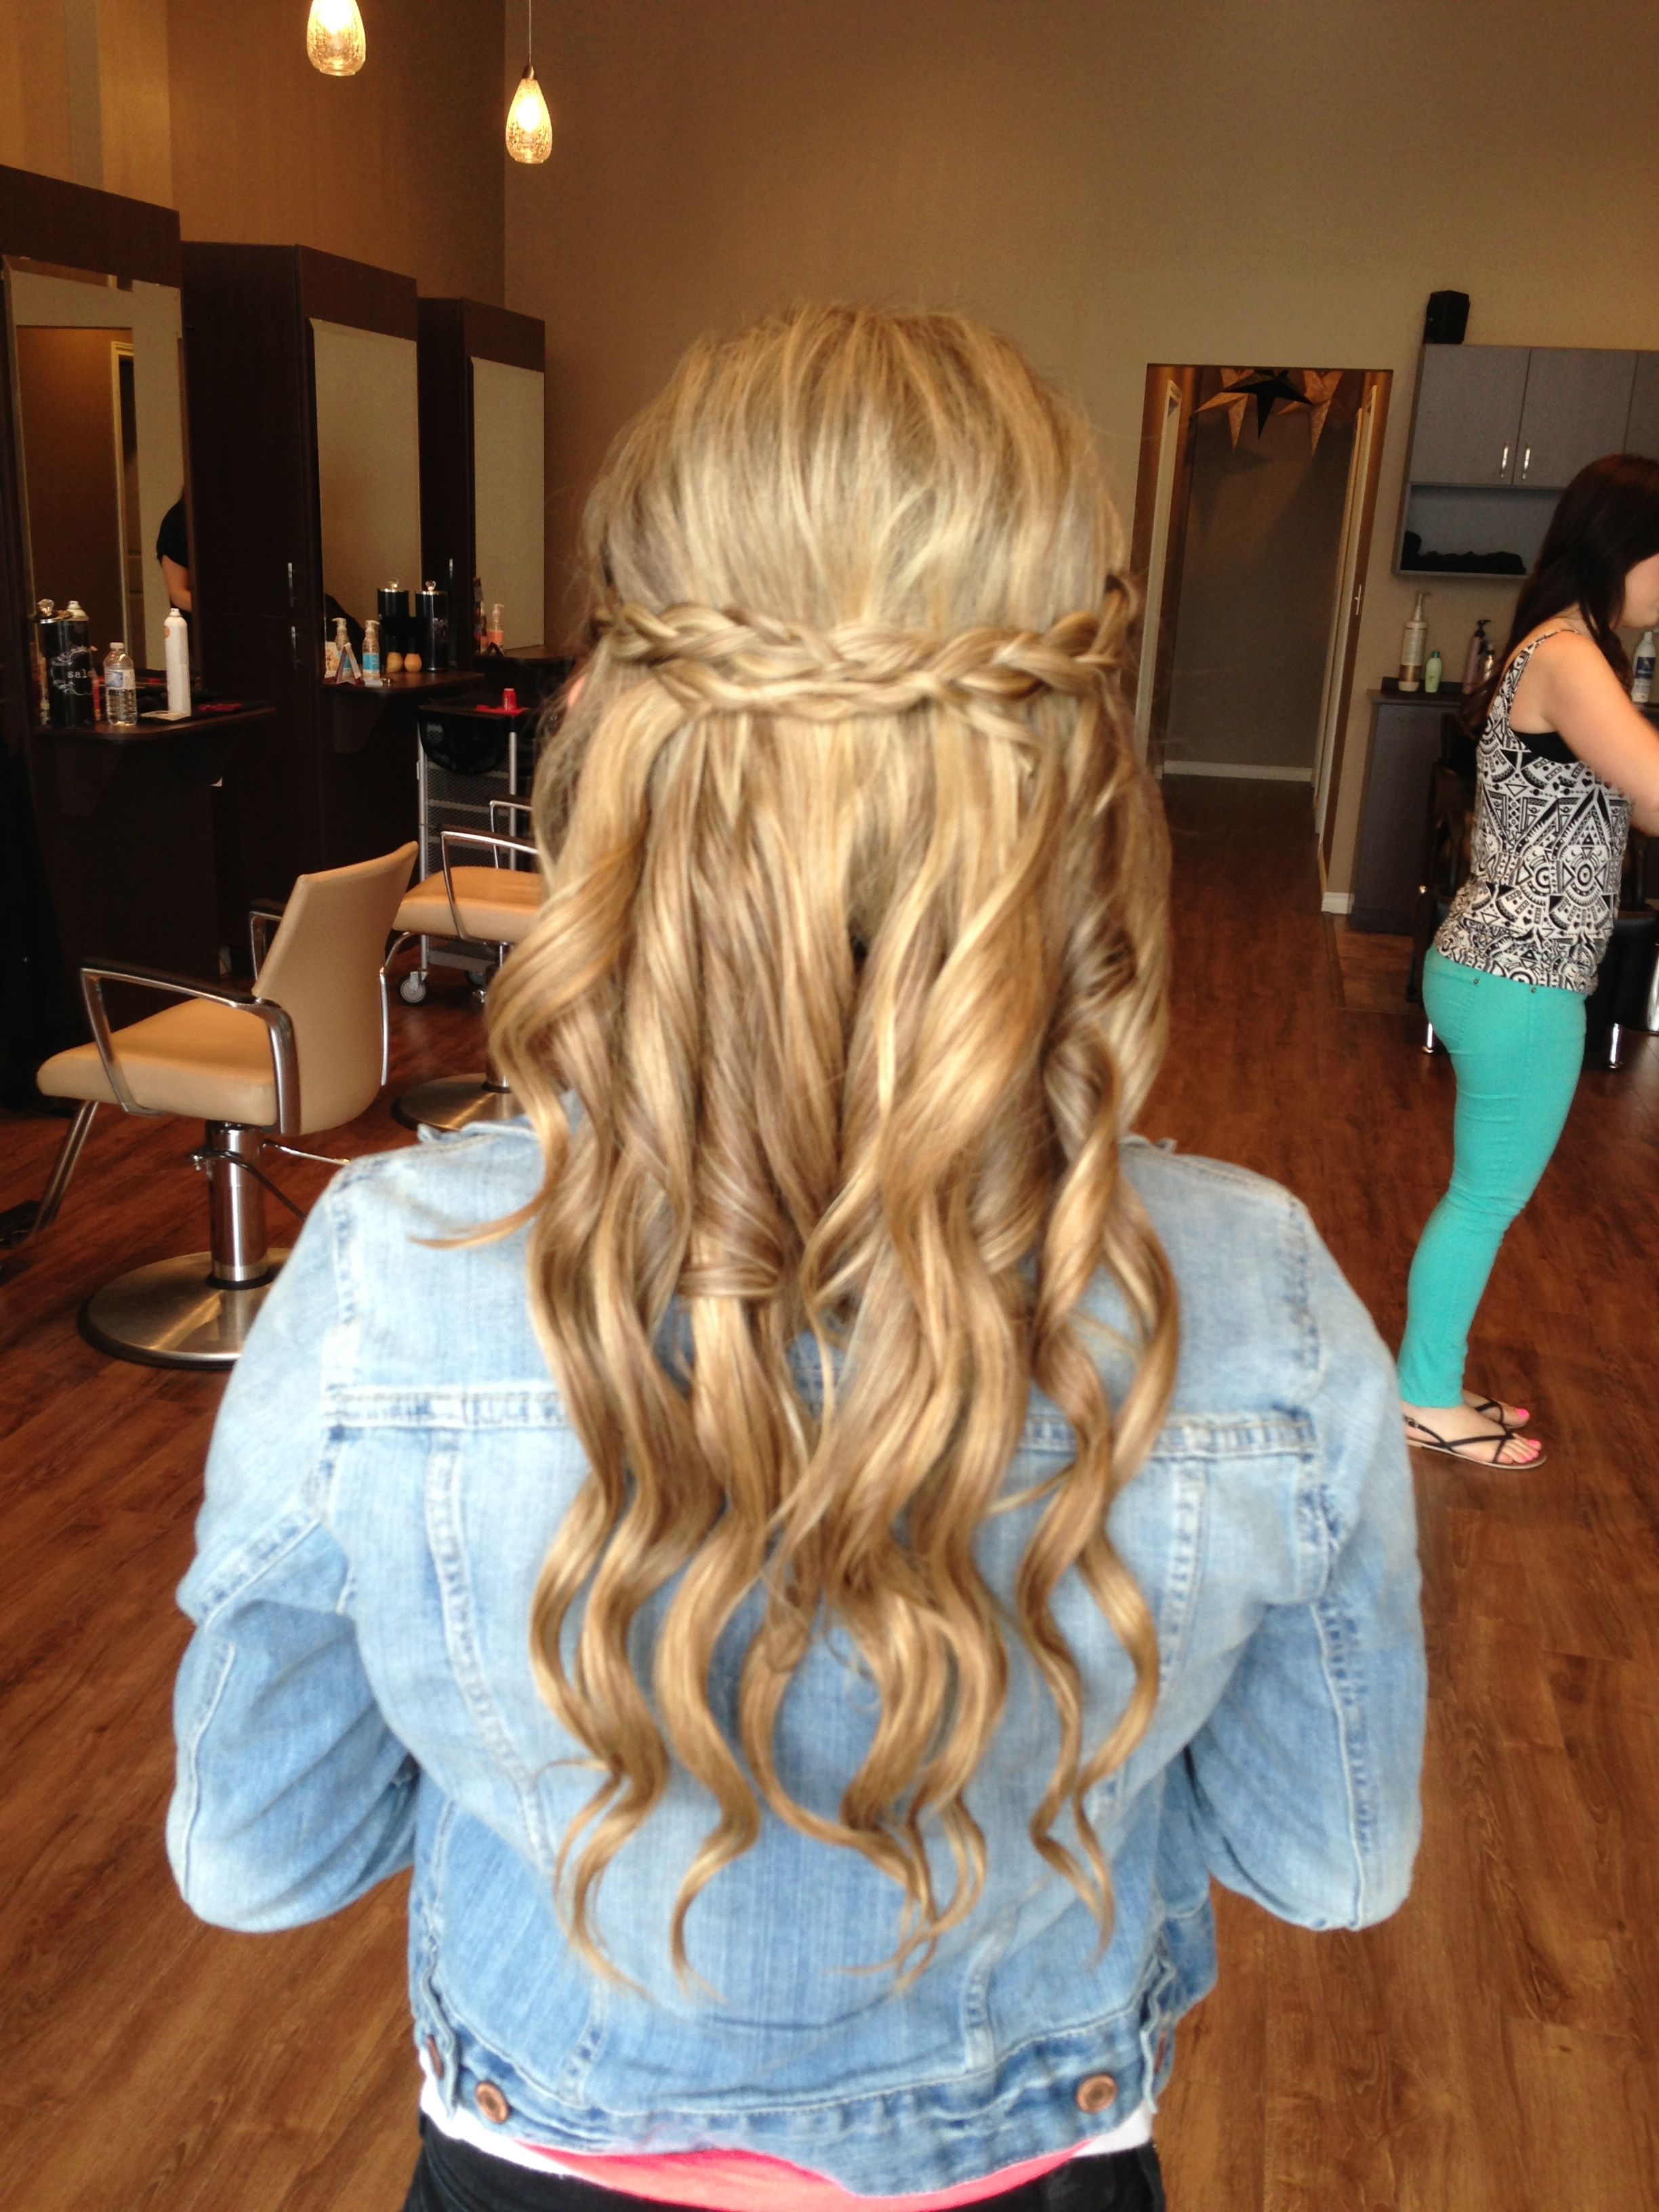 Half Up Curls Braids With Curls Hair Styles Curled Hairstyles